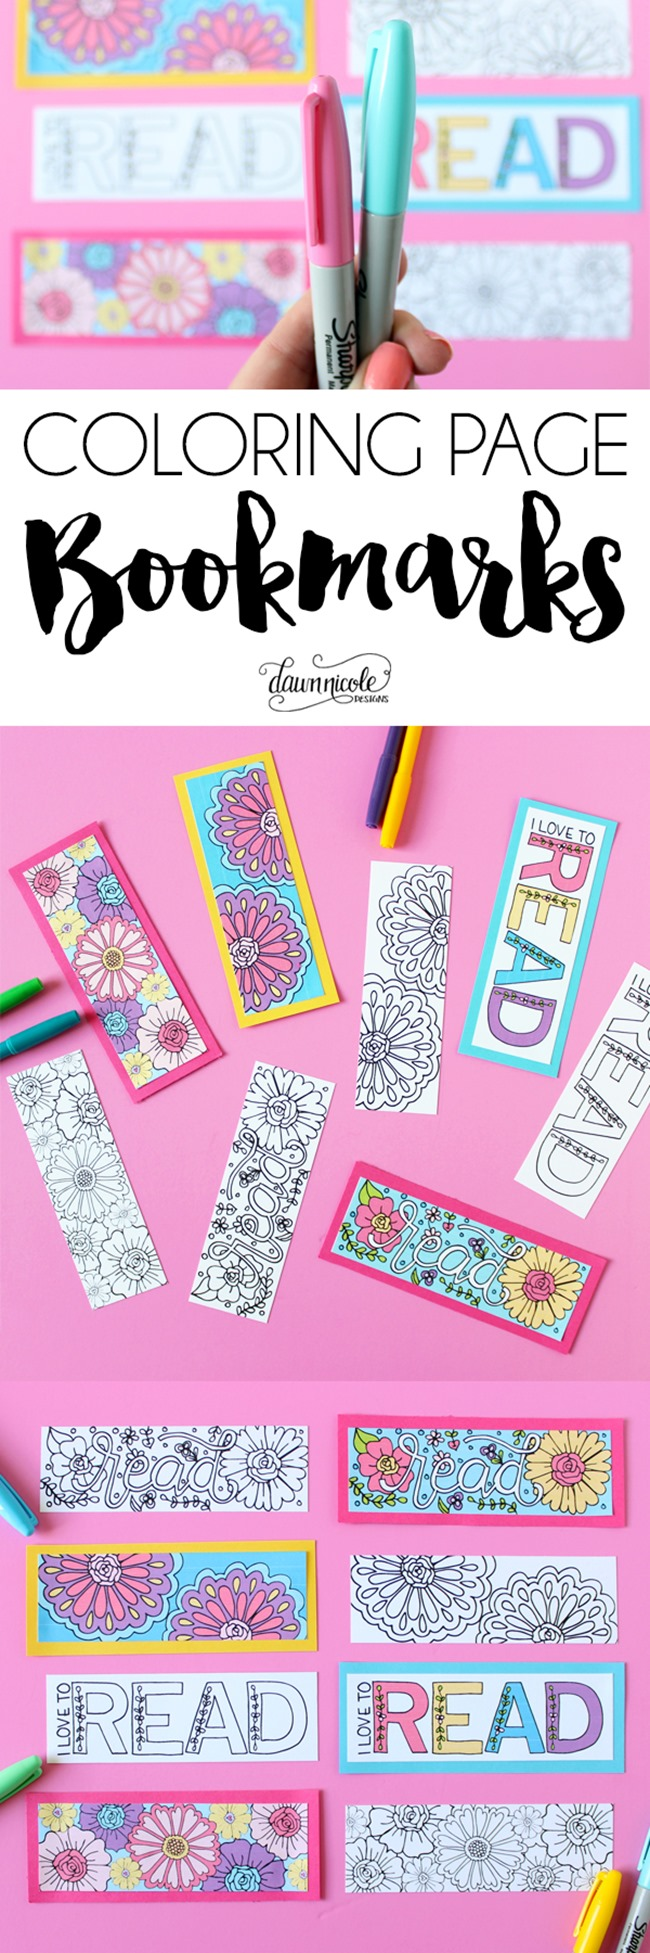 Summer Coloring Pages - bookmarks by Dawn Nicole